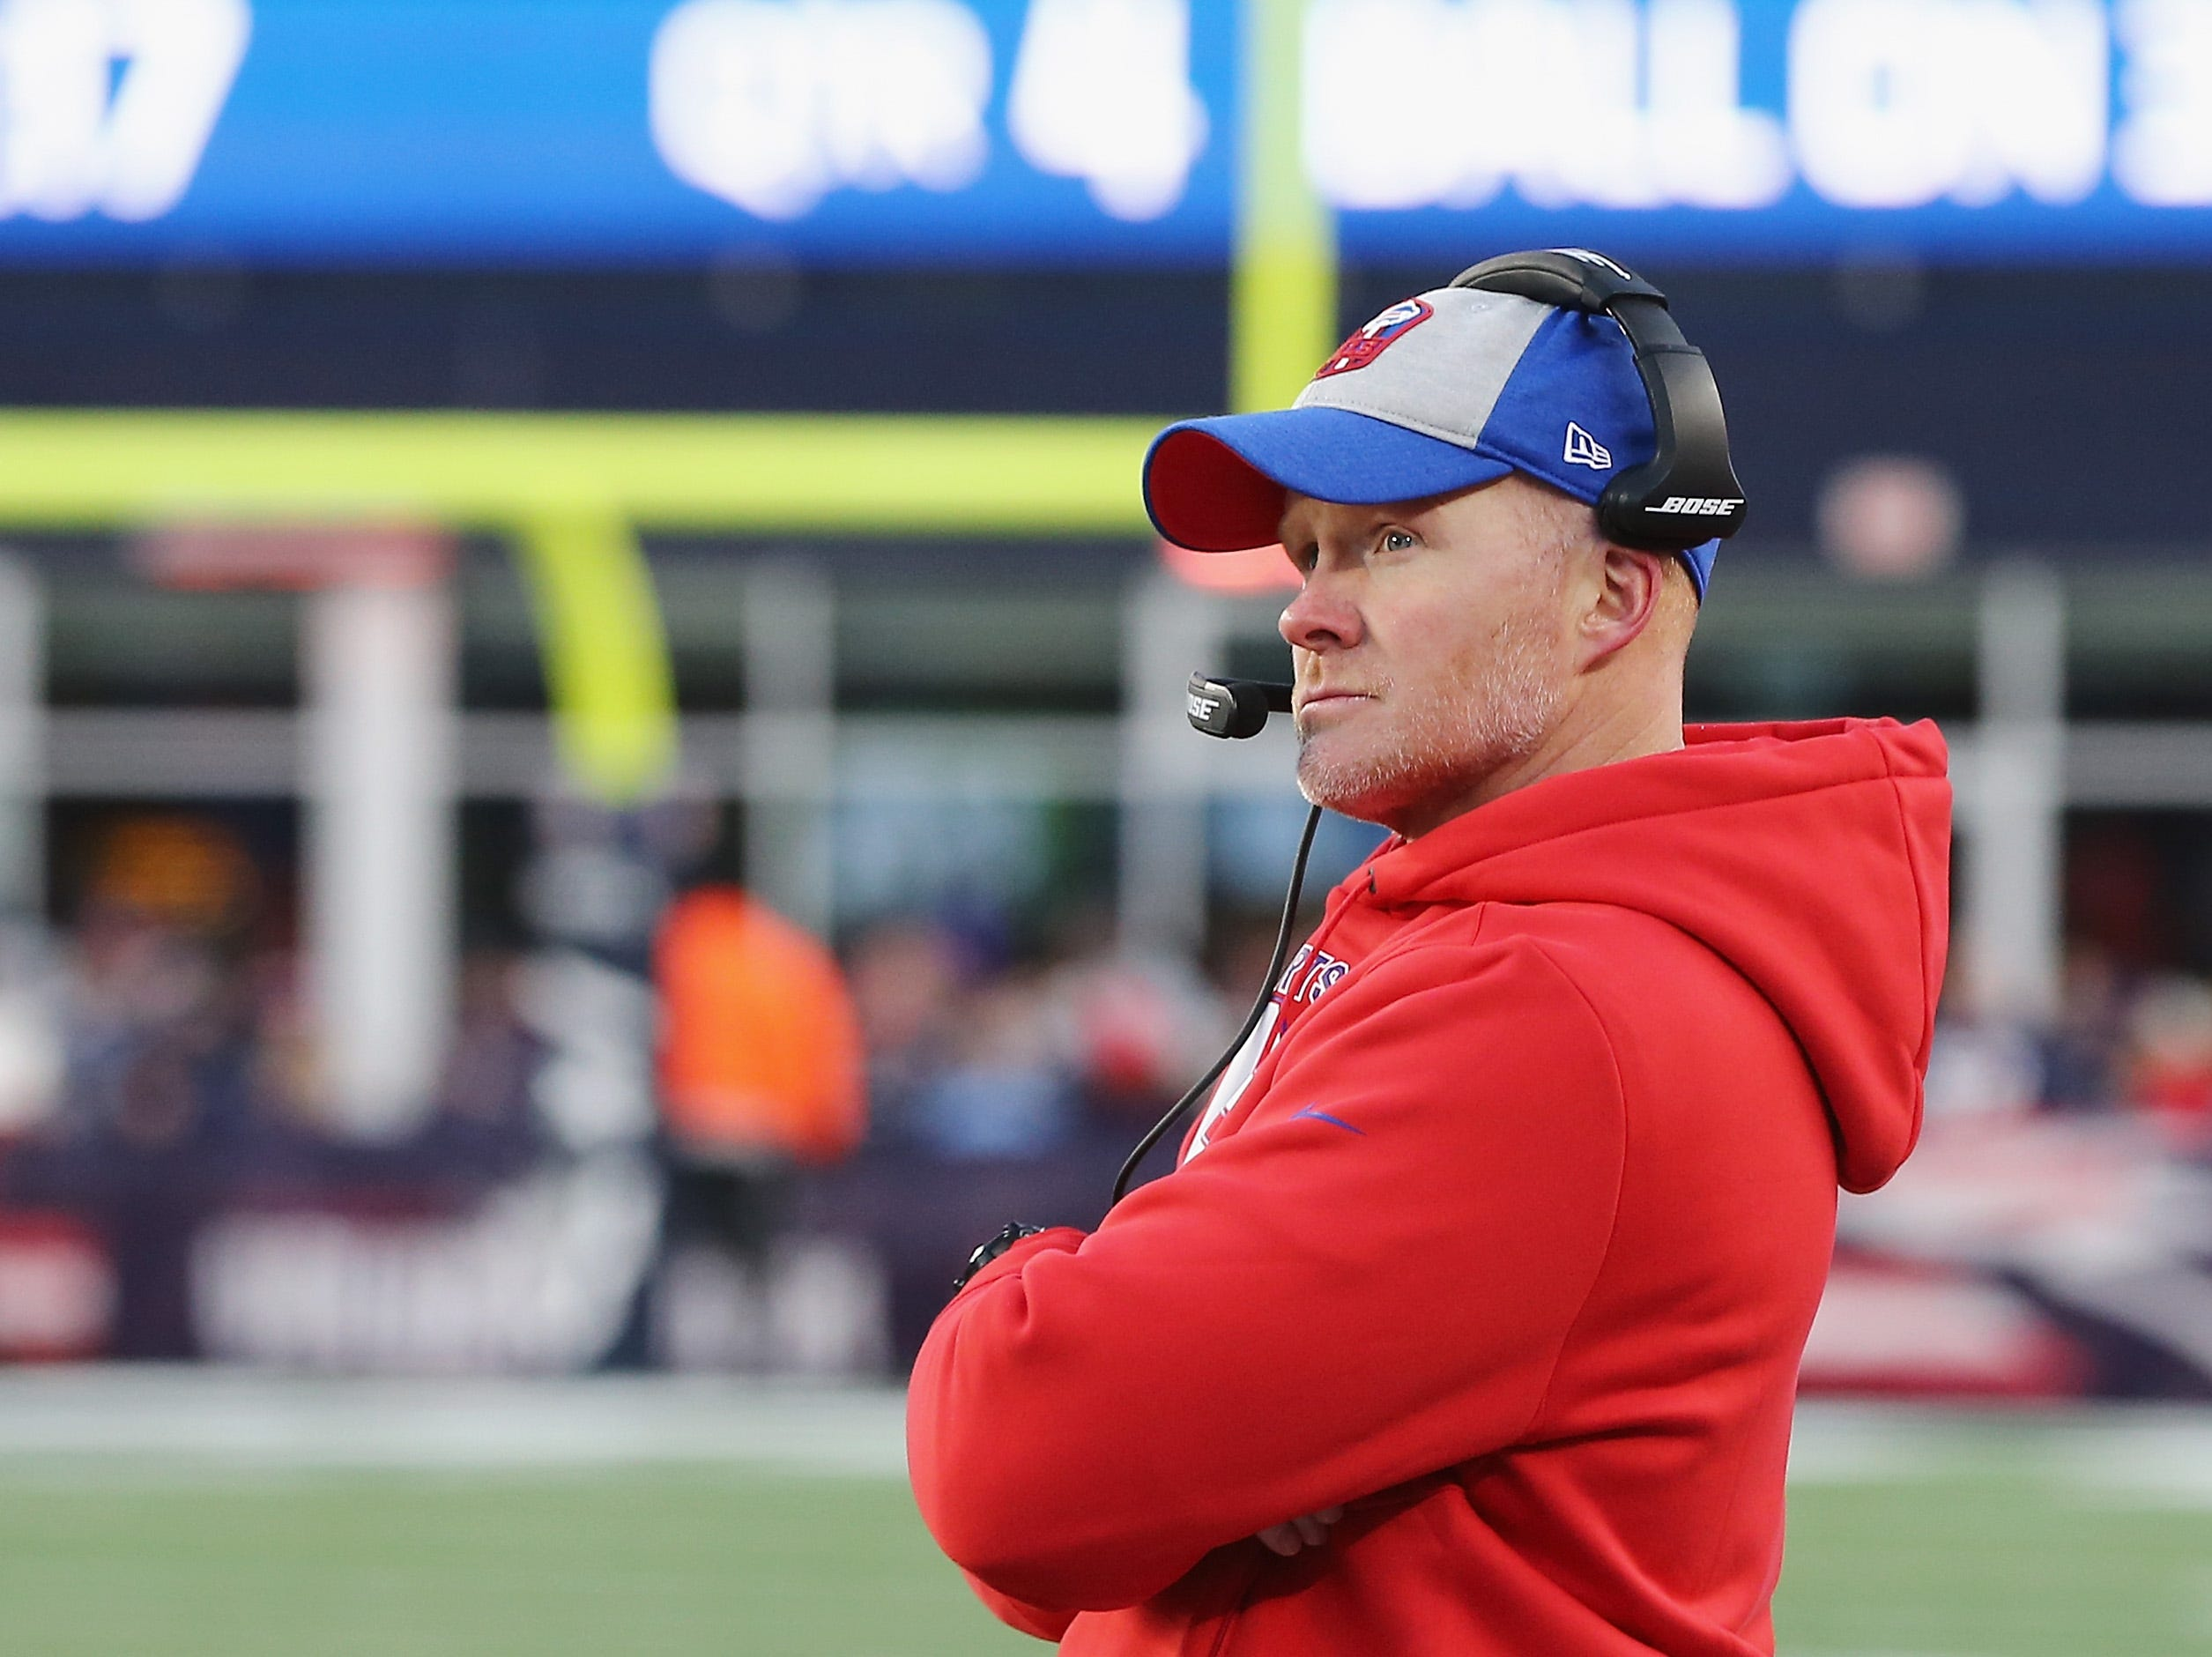 FOXBOROUGH, MA - DECEMBER 23:  Head coach Sean McDermott of the Buffalo Bills looks on during the second half against the New England Patriots at Gillette Stadium on December 23, 2018 in Foxborough, Massachusetts.  (Photo by Jim Rogash/Getty Images)